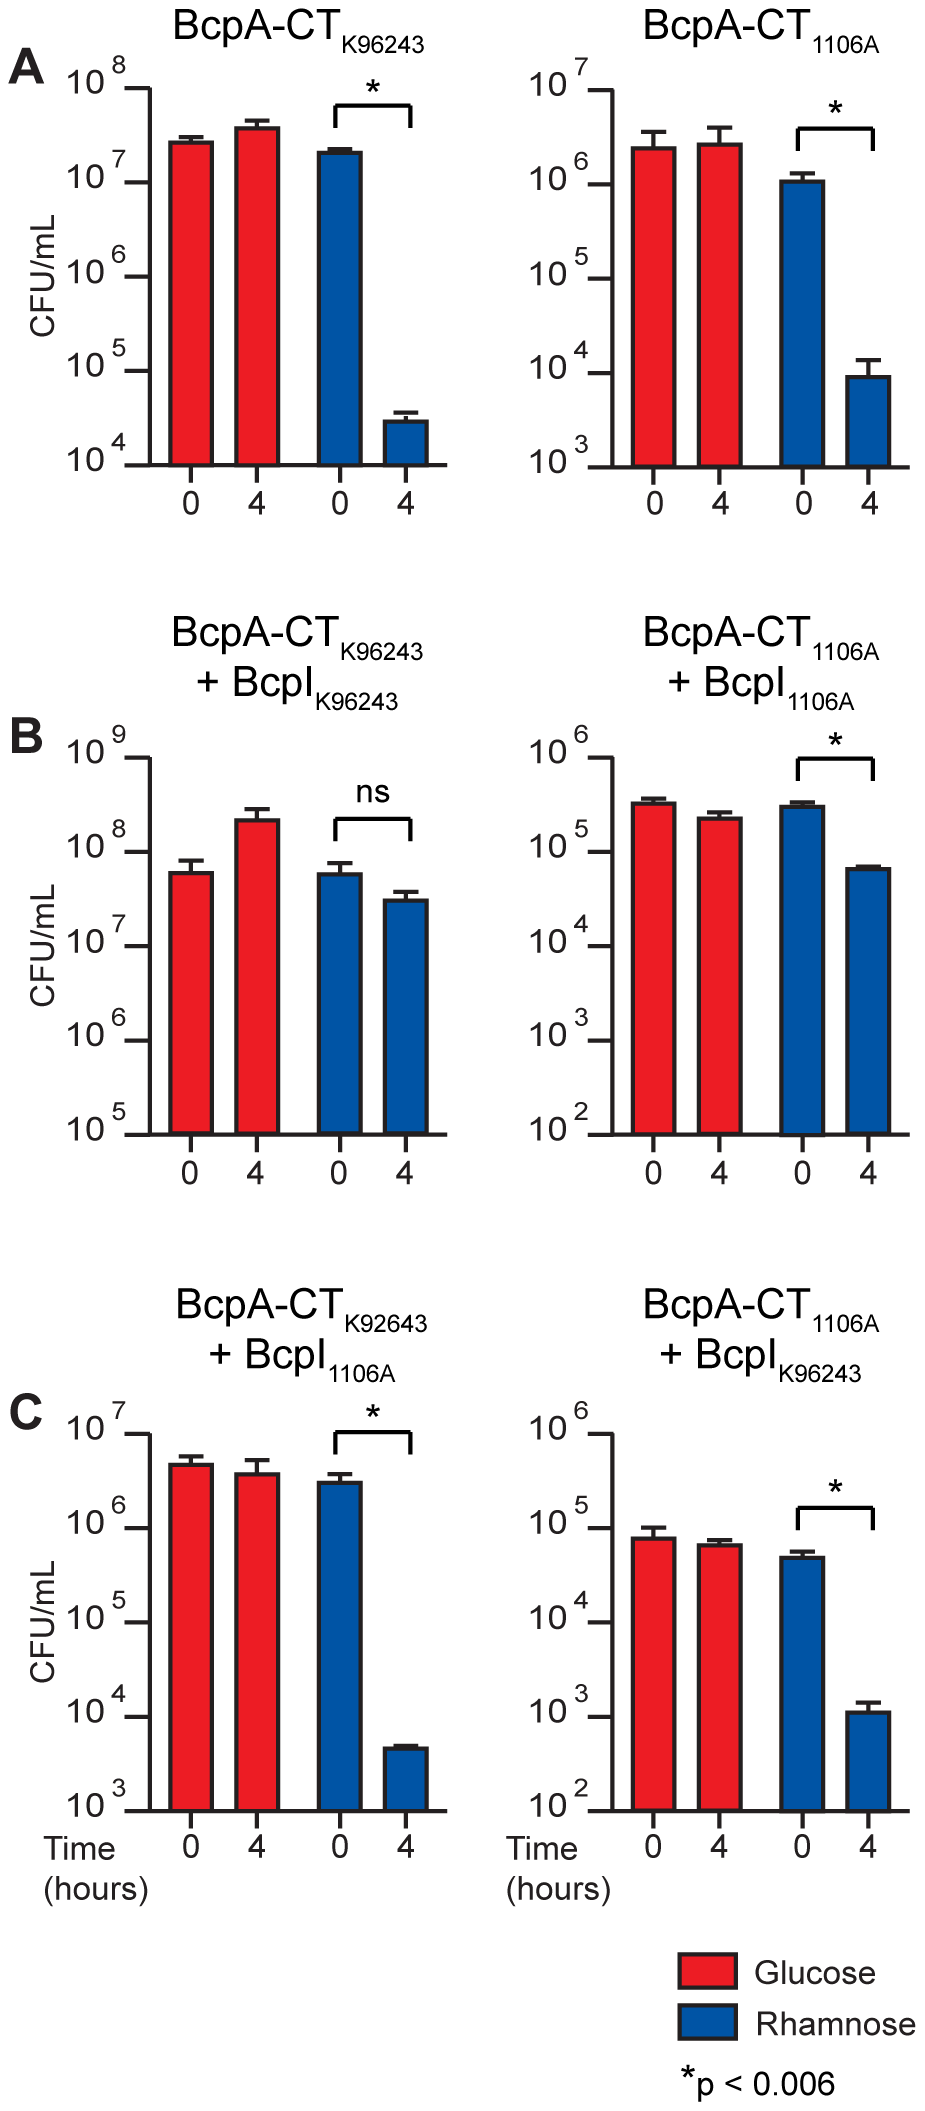 Intracellular toxicity of BcpA-CT proteins and protection by BcpI proteins.